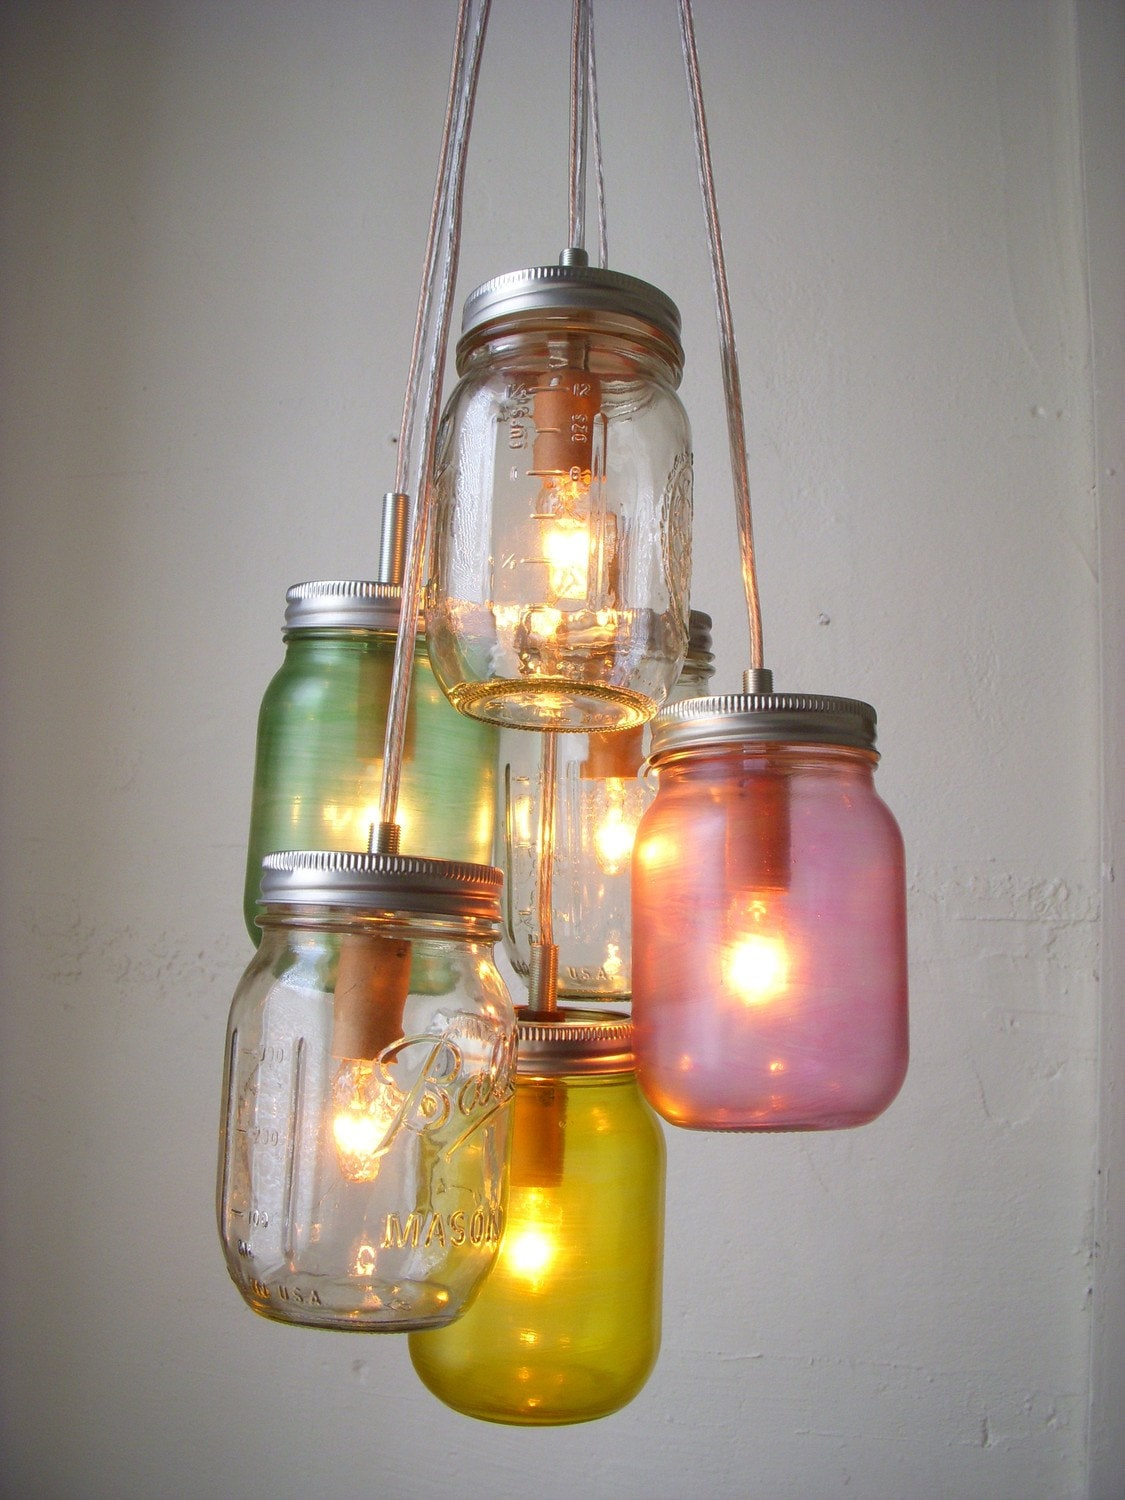 Pretty Pastels Mason Jar Chandelier - Mason Jar Light  - Handcrafted UpCycled BootsNGus Hanging Pendant Lighting Fixture - BootsNGus